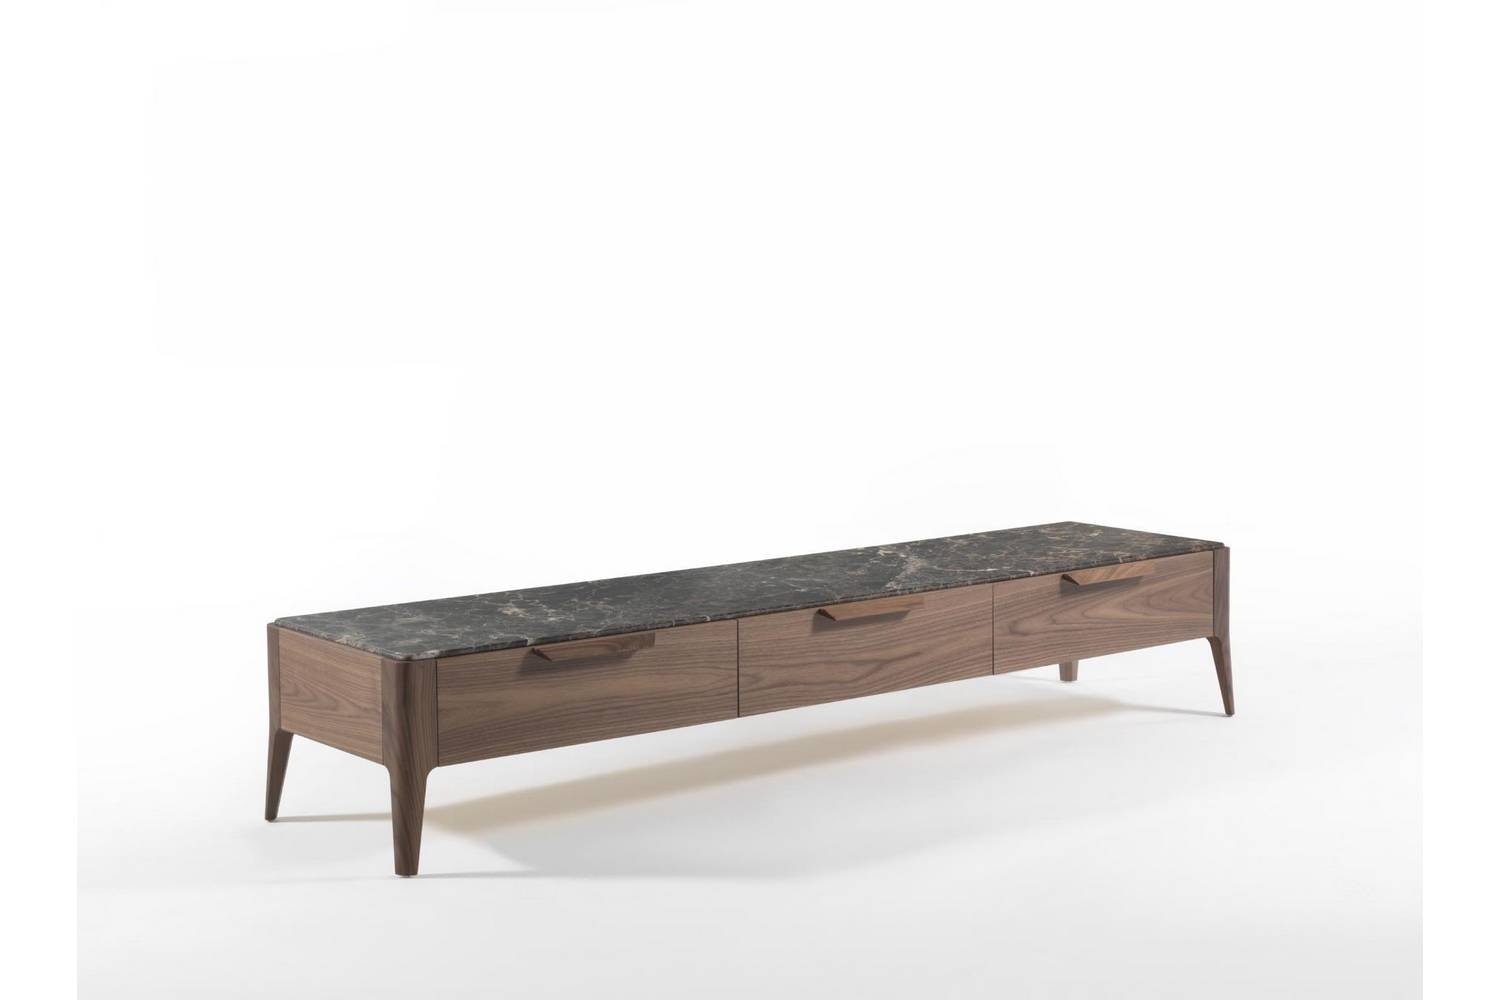 Atlante TV Stand by C. Ballabio for Porada